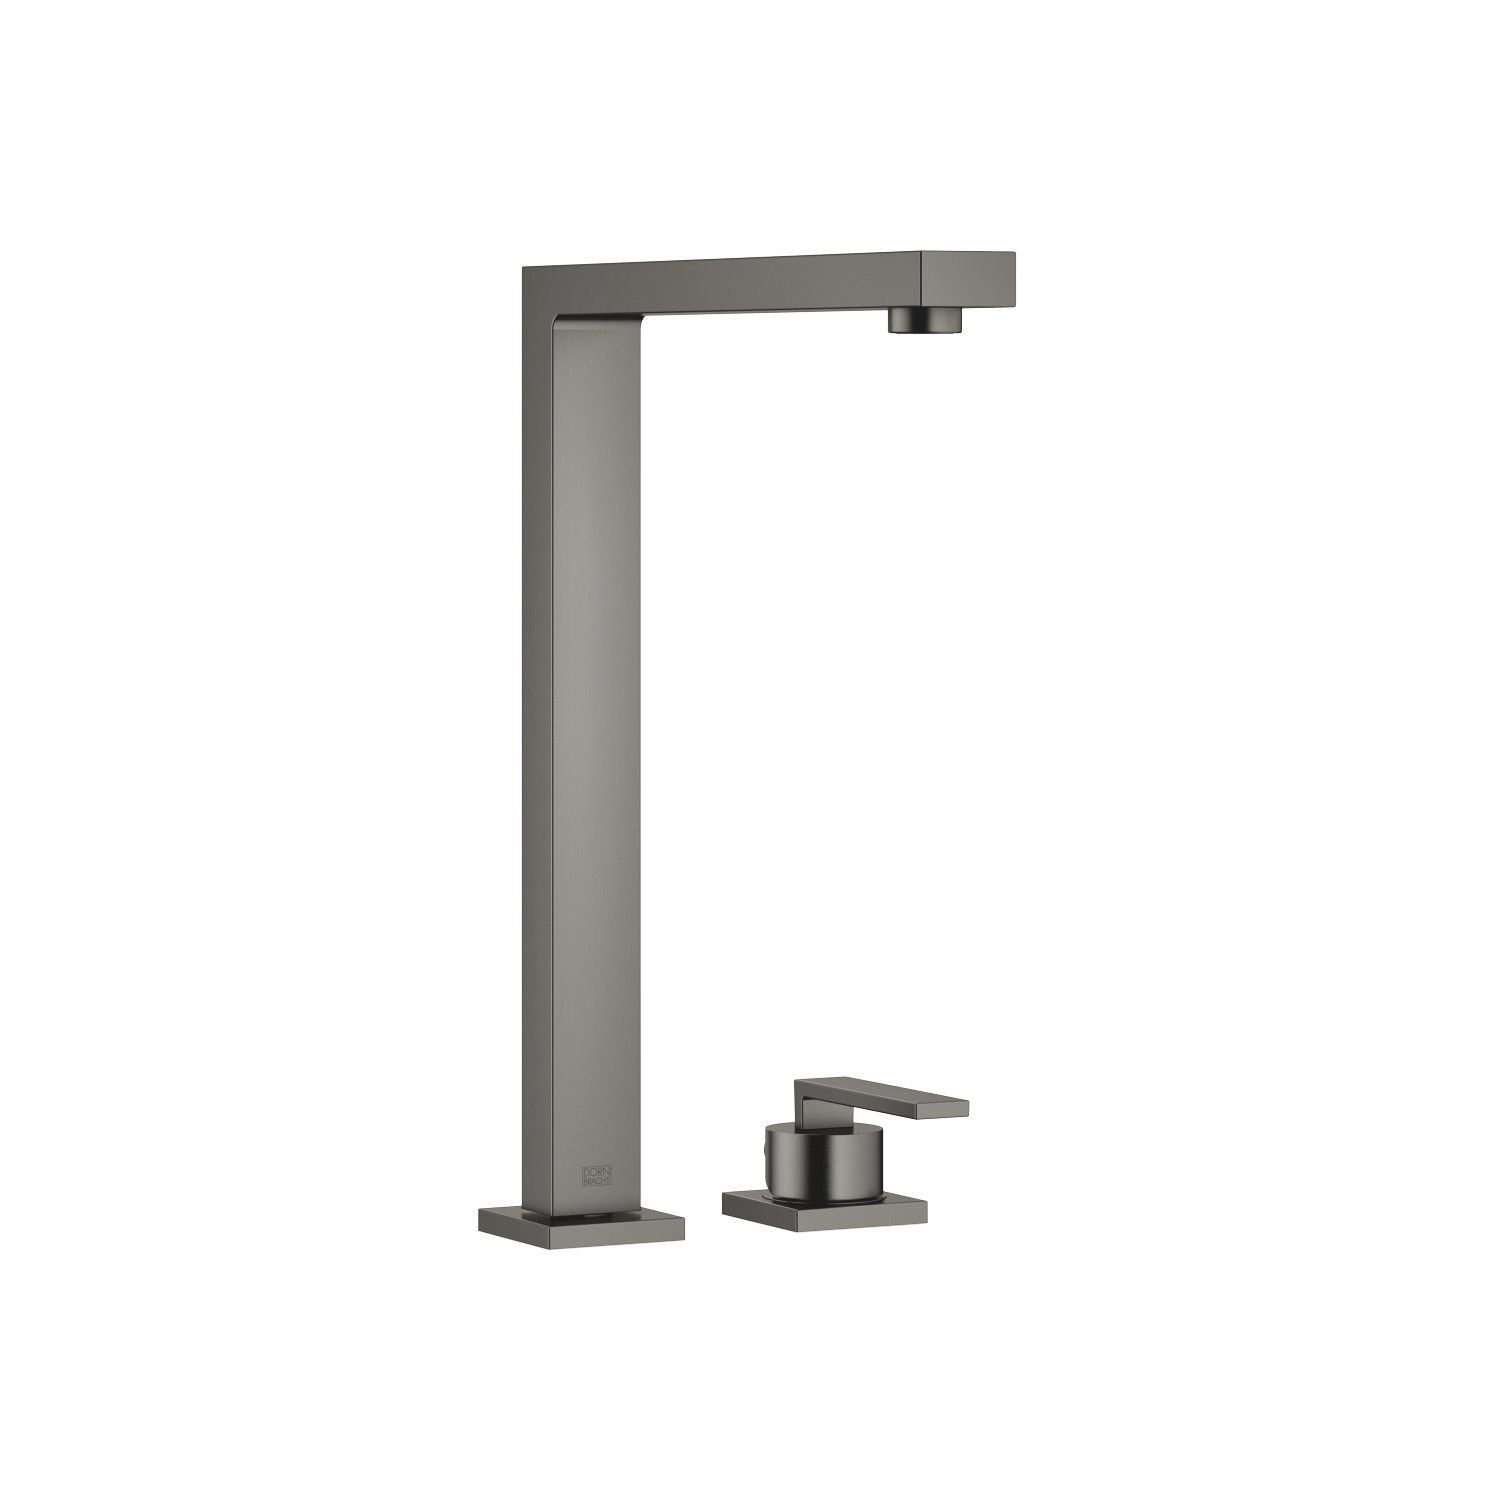 Two-hole mixer with individual flanges - Dark Platinum matte